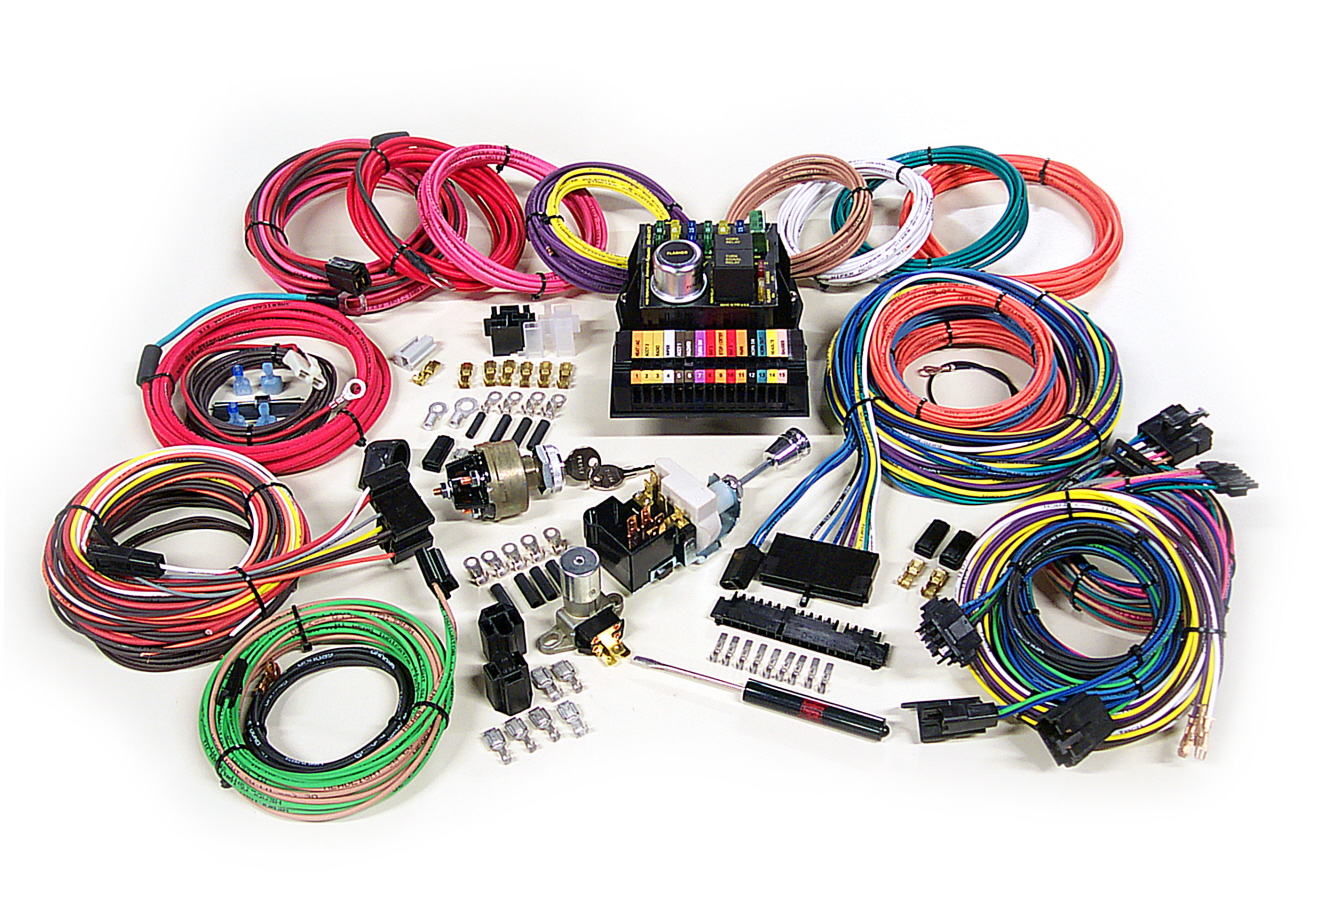 hight resolution of auto wiring harness kits wiring diagrams bibautomotive wire harness kits wiring diagram expert auto wiring harness